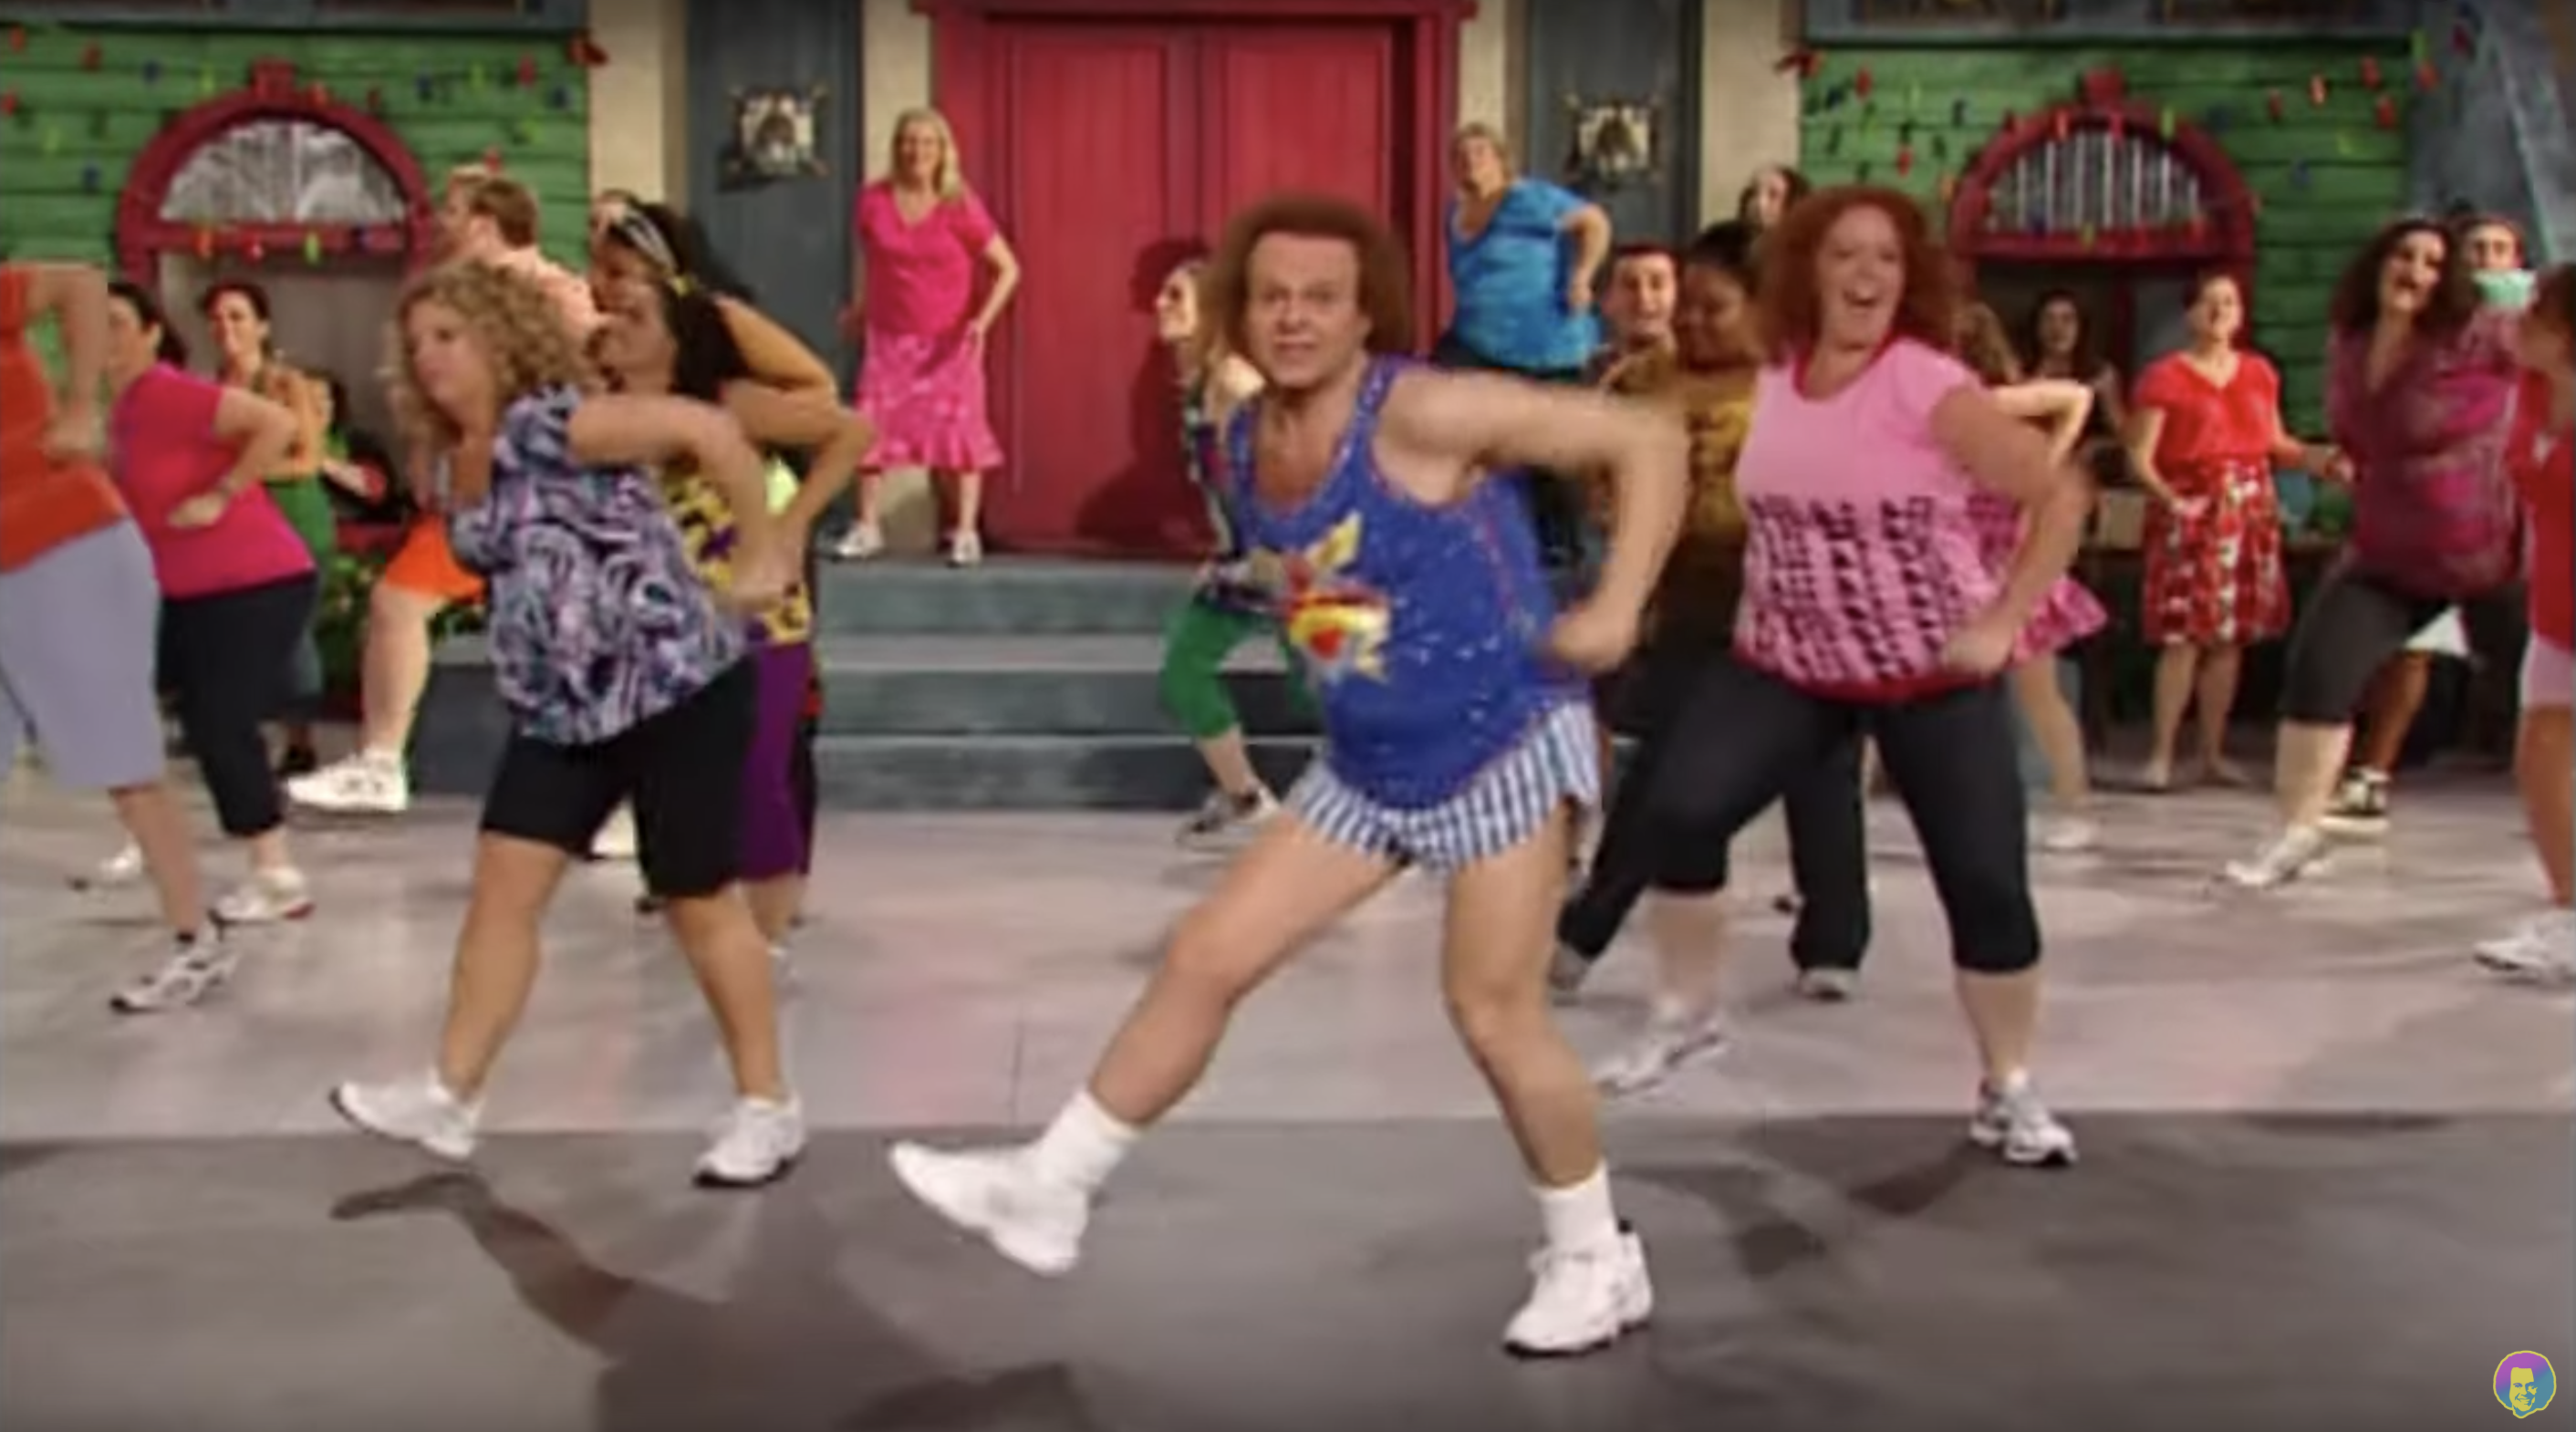 Get Fit With Richard Simmons While In Self-Isolation